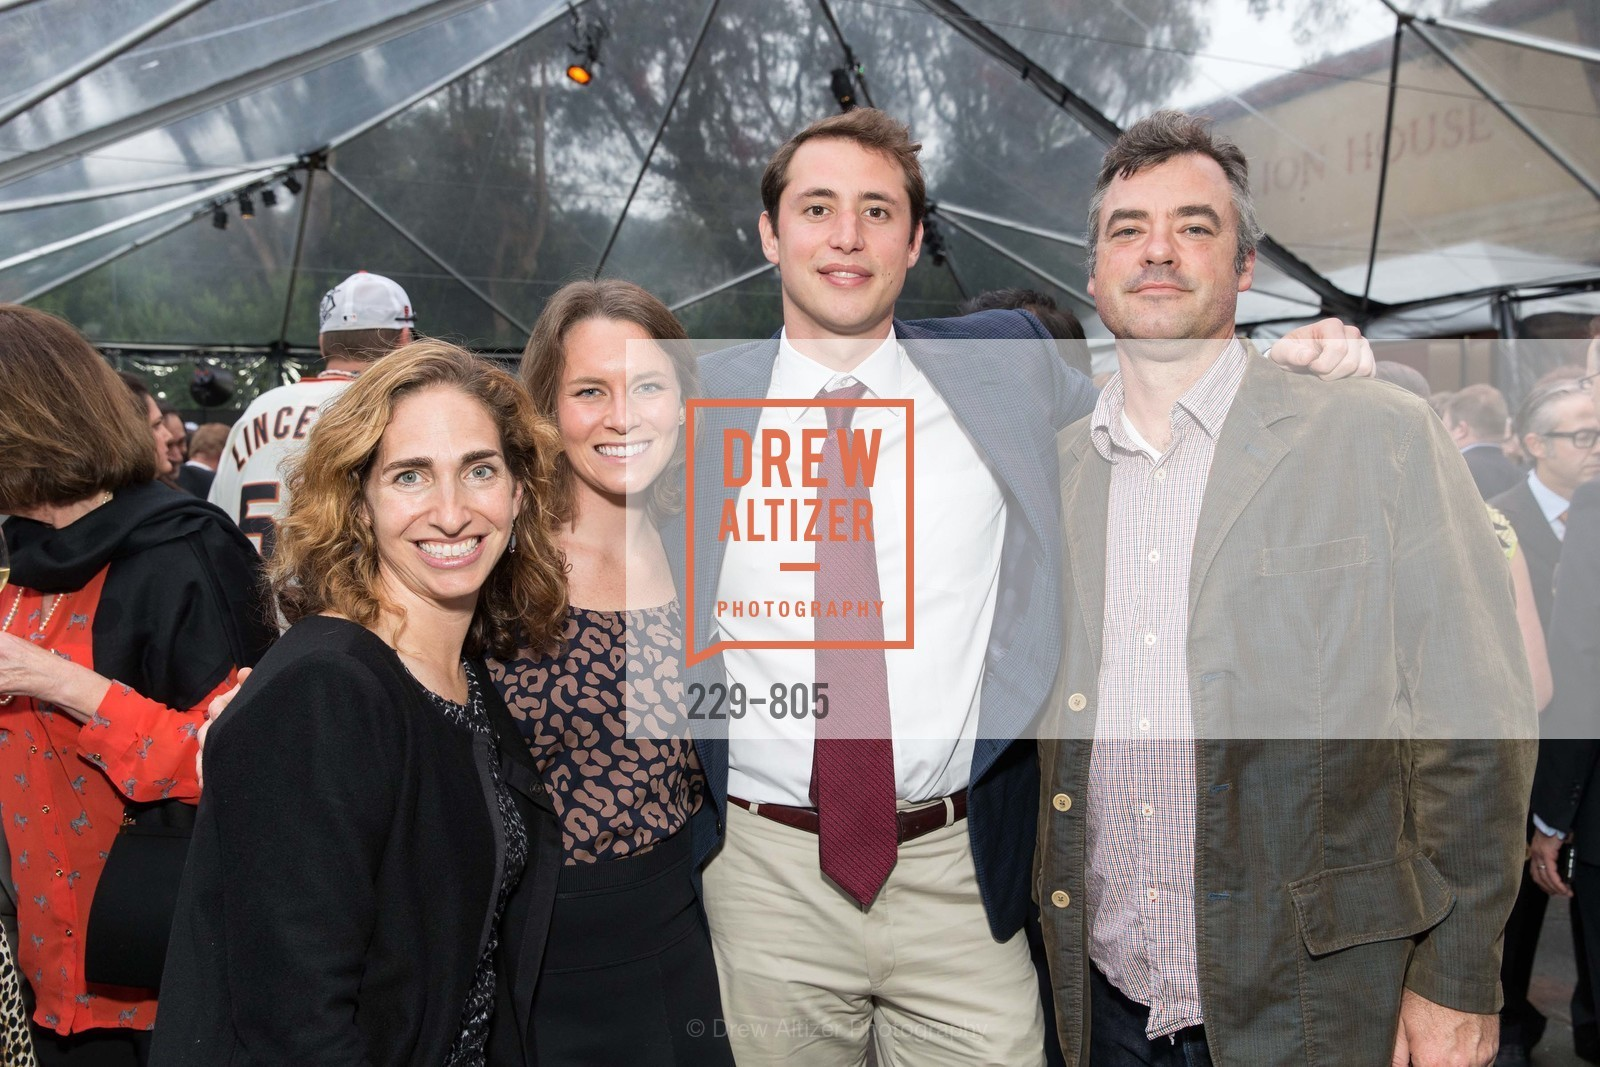 Stacey Rubin, Brittany Powell, Sam Cartmell, John Oram, ZOOFEST 2015, US, April 26th, 2015,Drew Altizer, Drew Altizer Photography, full-service agency, private events, San Francisco photographer, photographer california